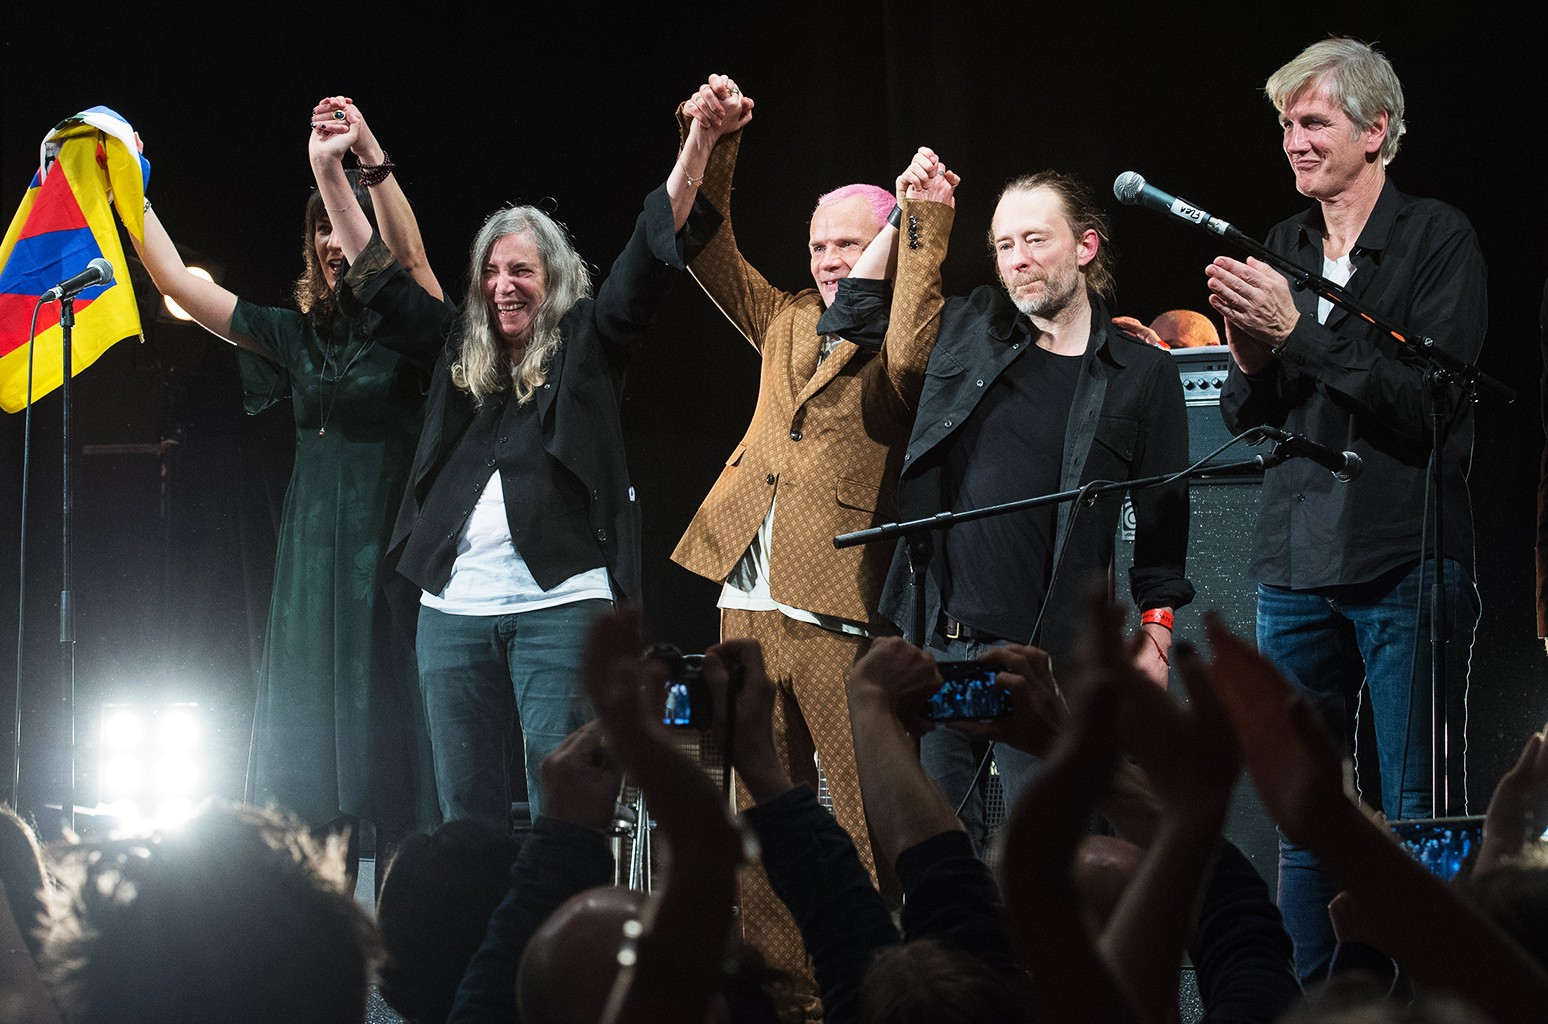 Jesse Paris Smith, Patti Smith, Thom Yorke, Flea and Tony Shanahan